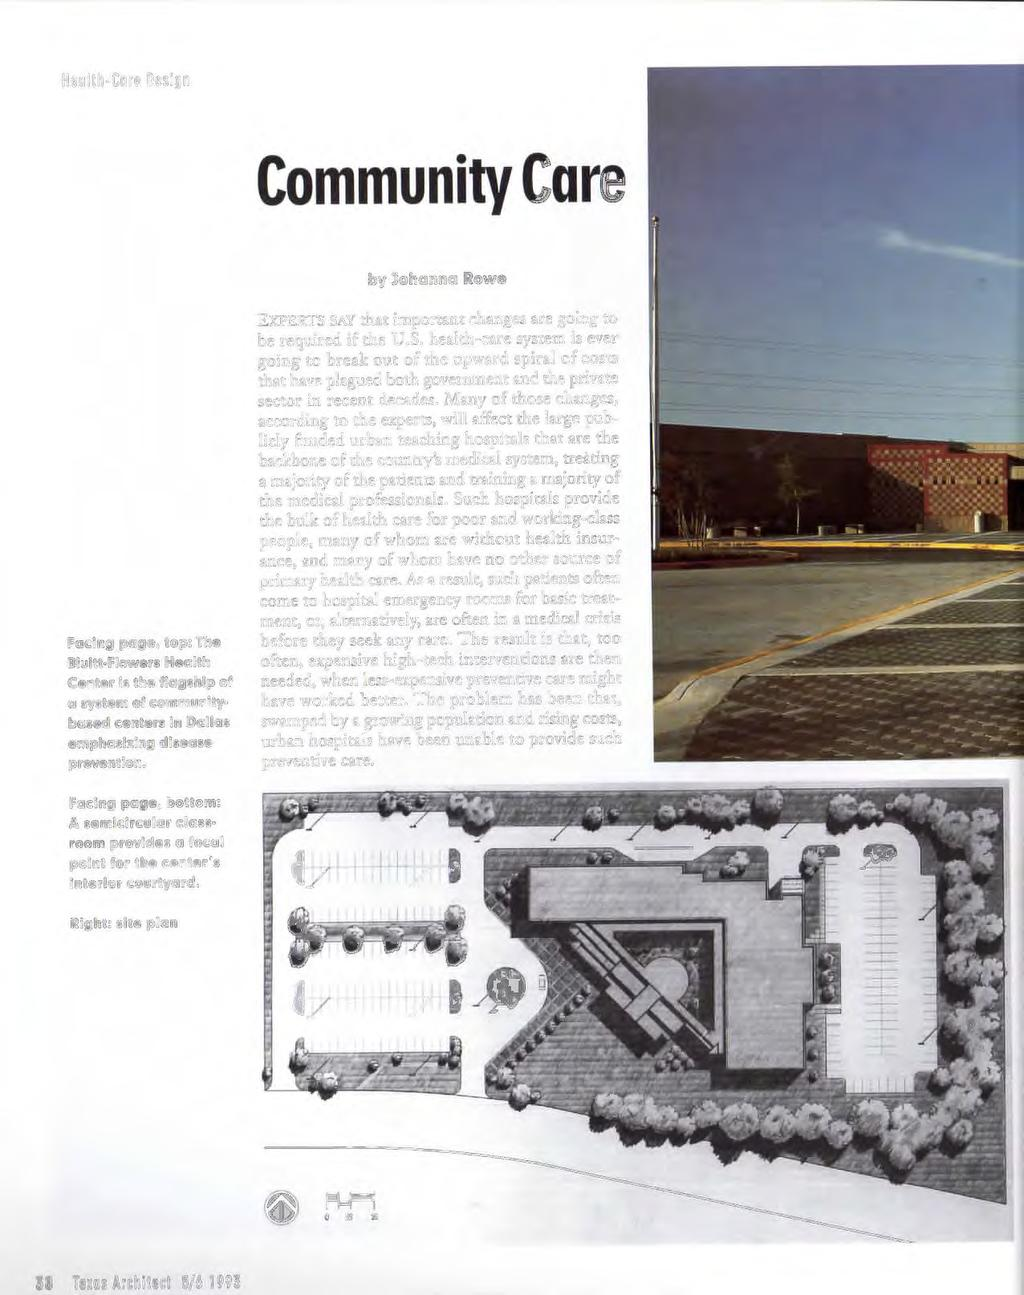 Health-Cure Design Community Care by Johanna Rowe Facing page, top : The Blultt -Flowers Health Center Is the flag ship of a system of community based centers In Dallas emphasizing di sease